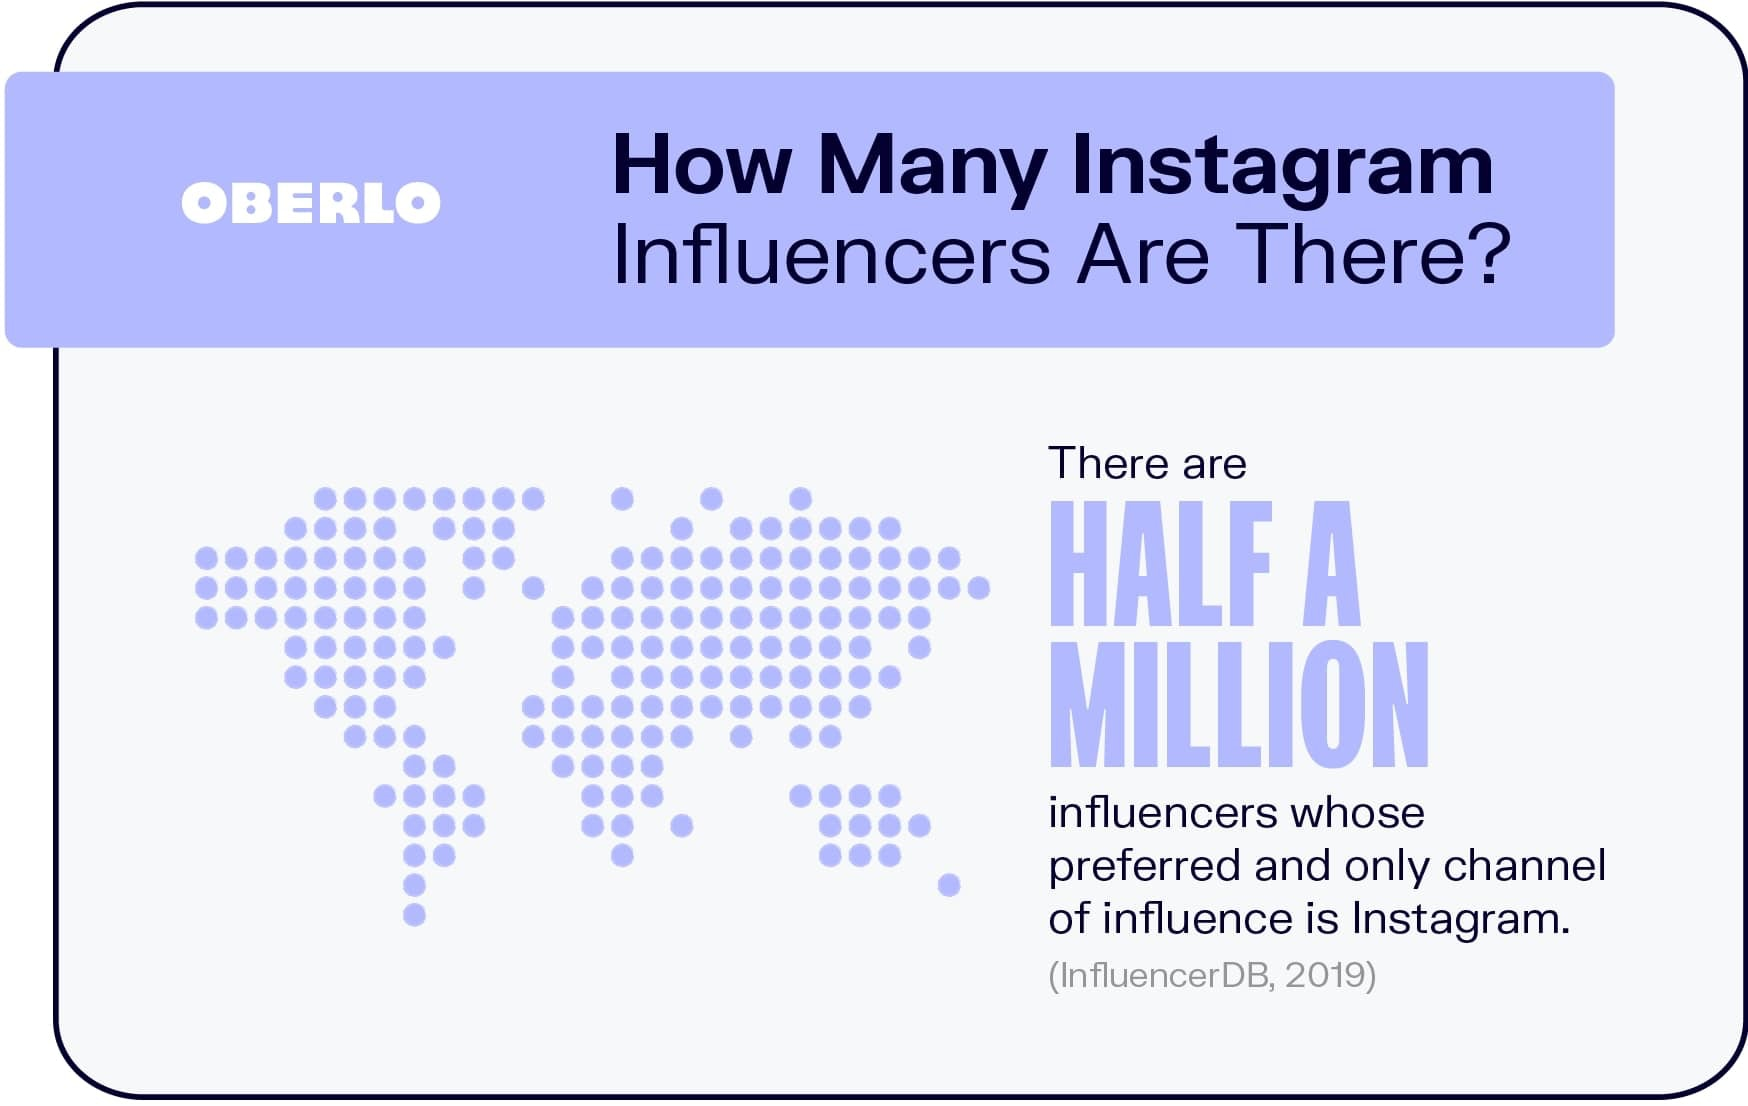 How Many Instagram Influencers Are There?